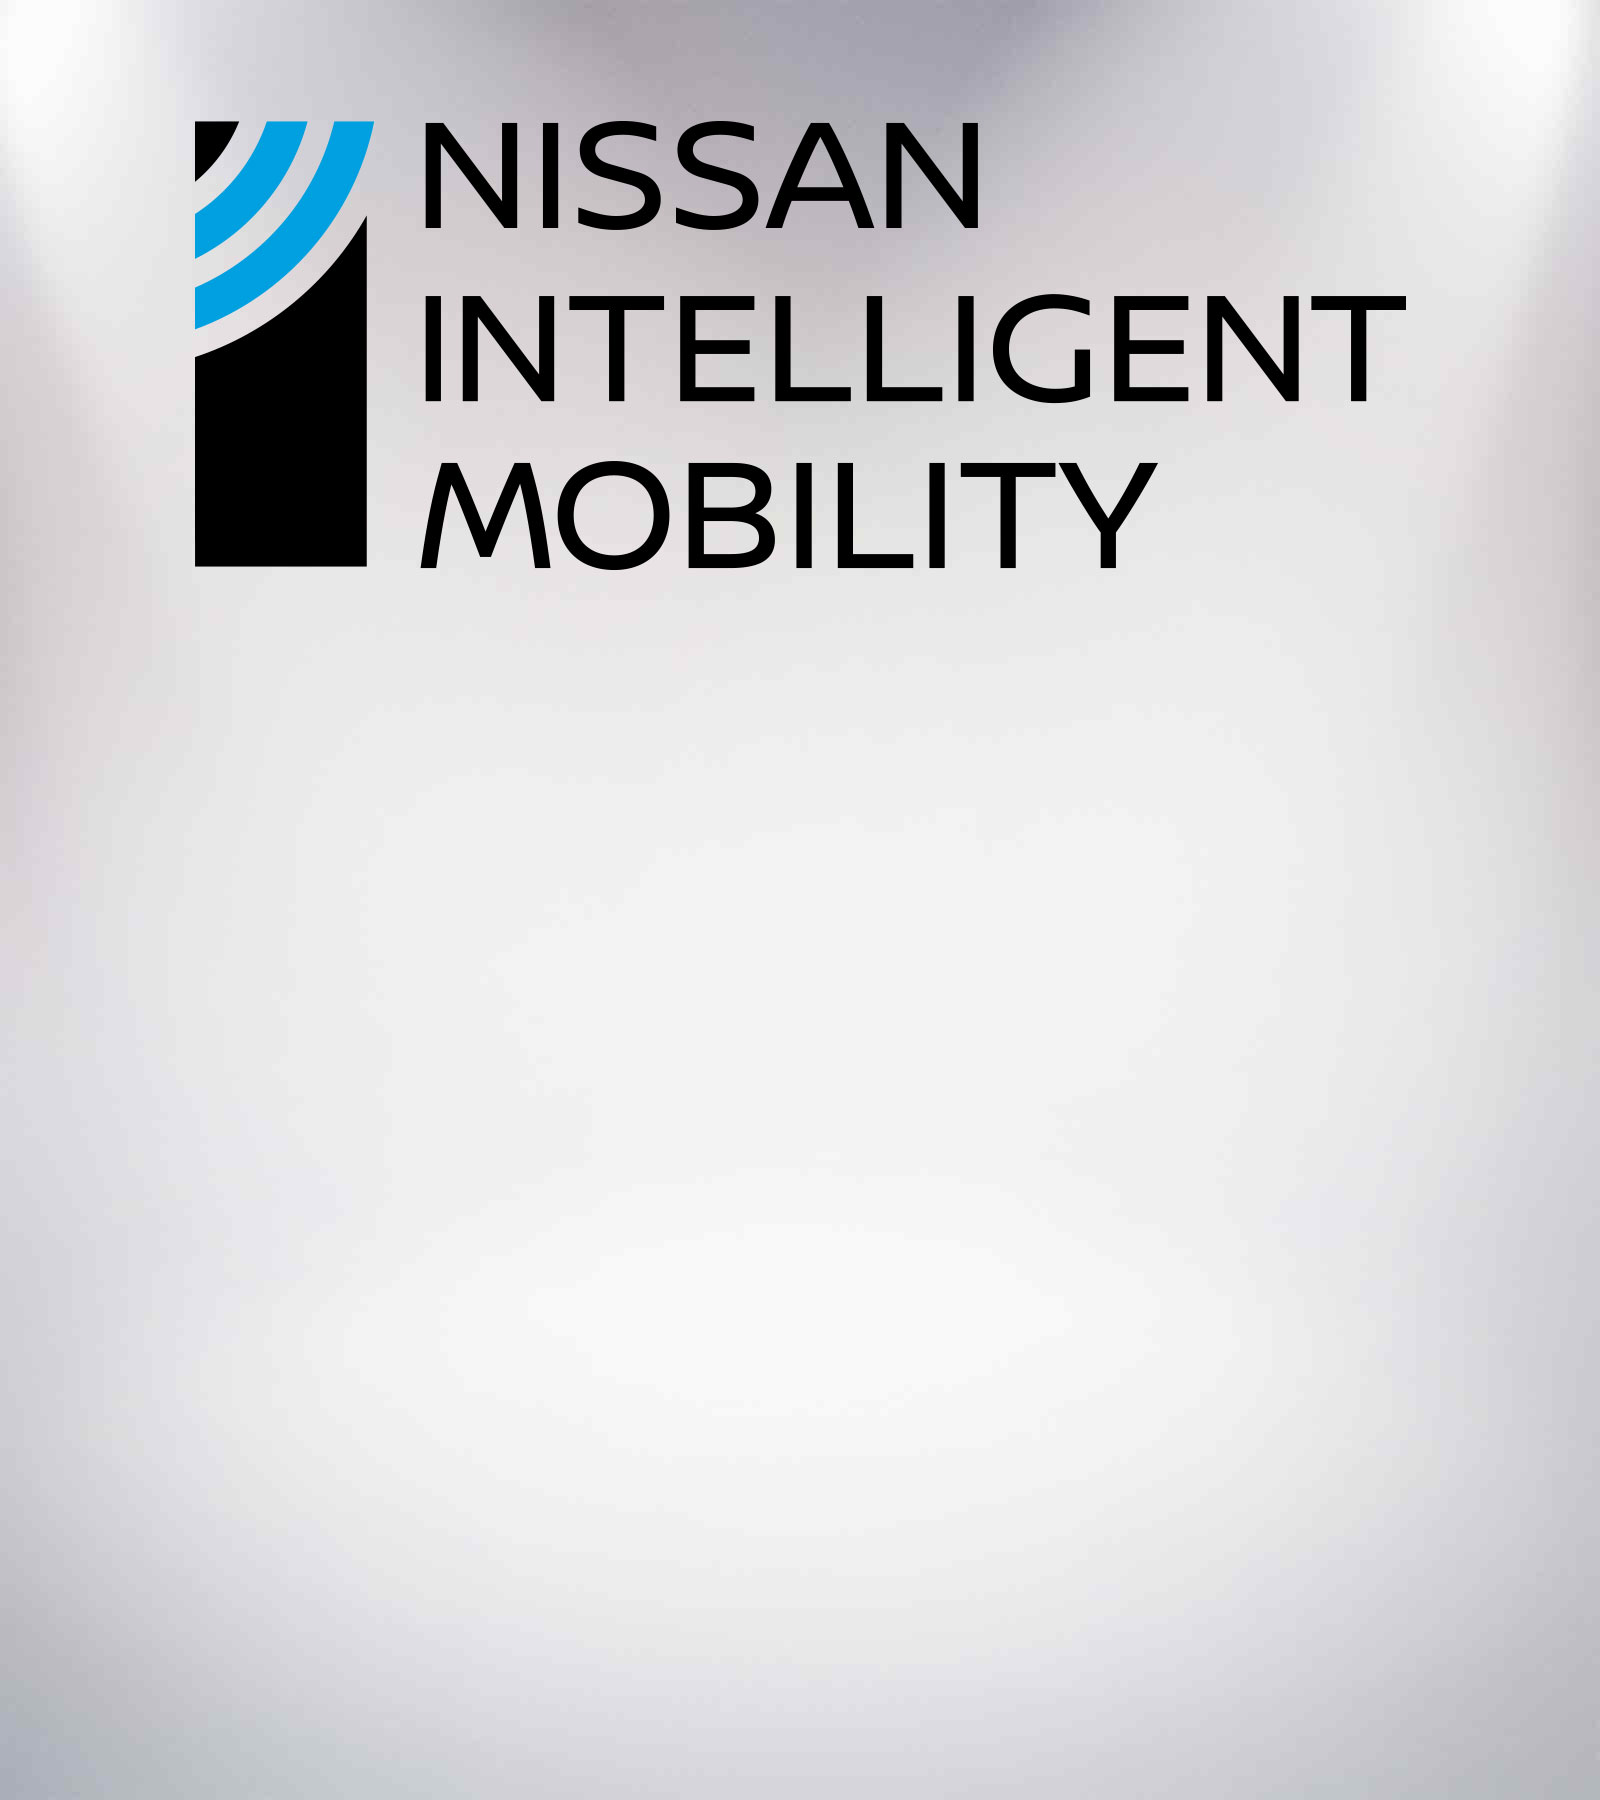 Nissan Intelligent Mobility.